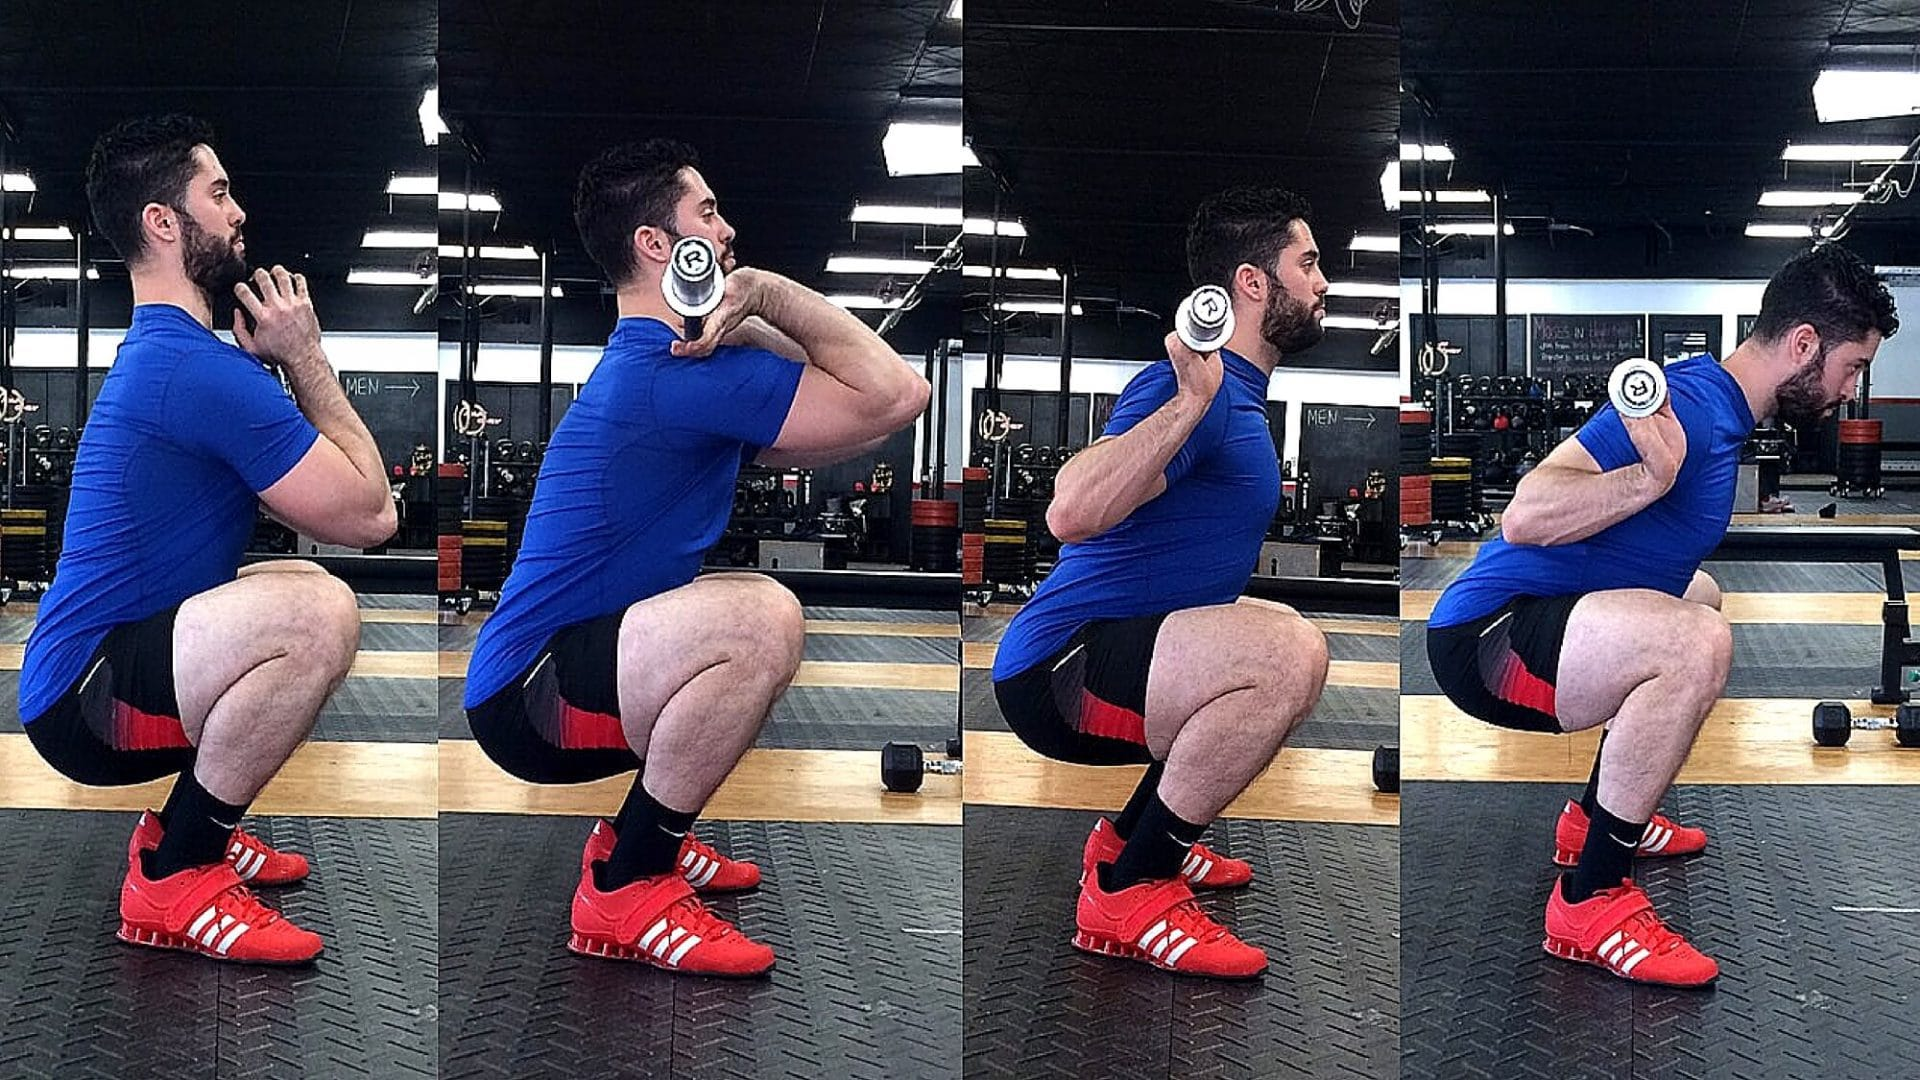 a4f904950aa9 Fixing Hip Pain During Squats - The Barbell Physio